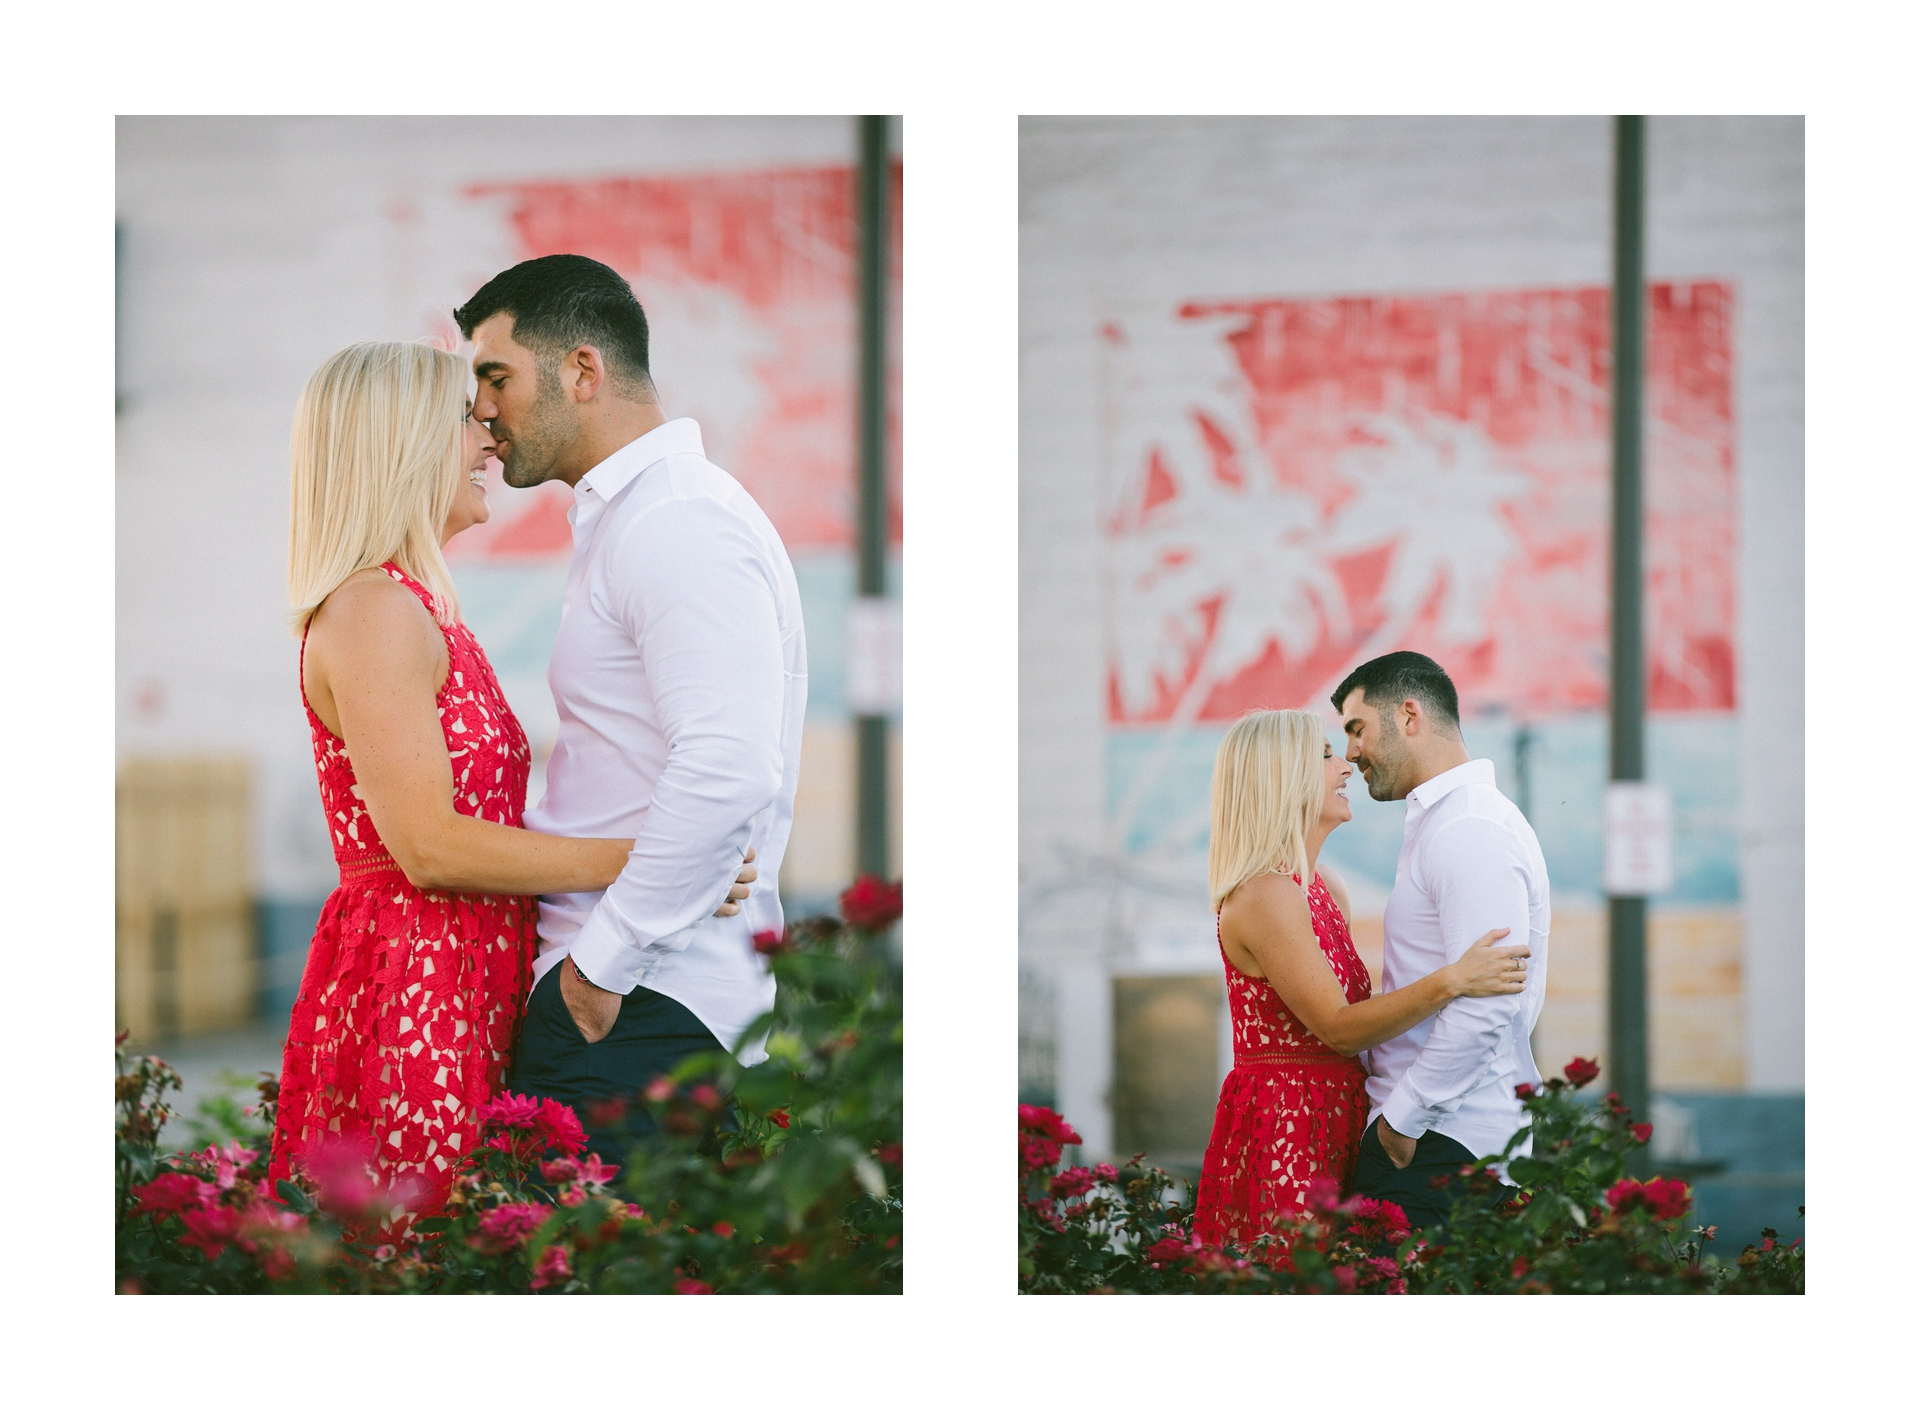 Sara Shookman Angelo DiFranco Engagement photos in cleveland by too much awesomeness photography 10.jpg